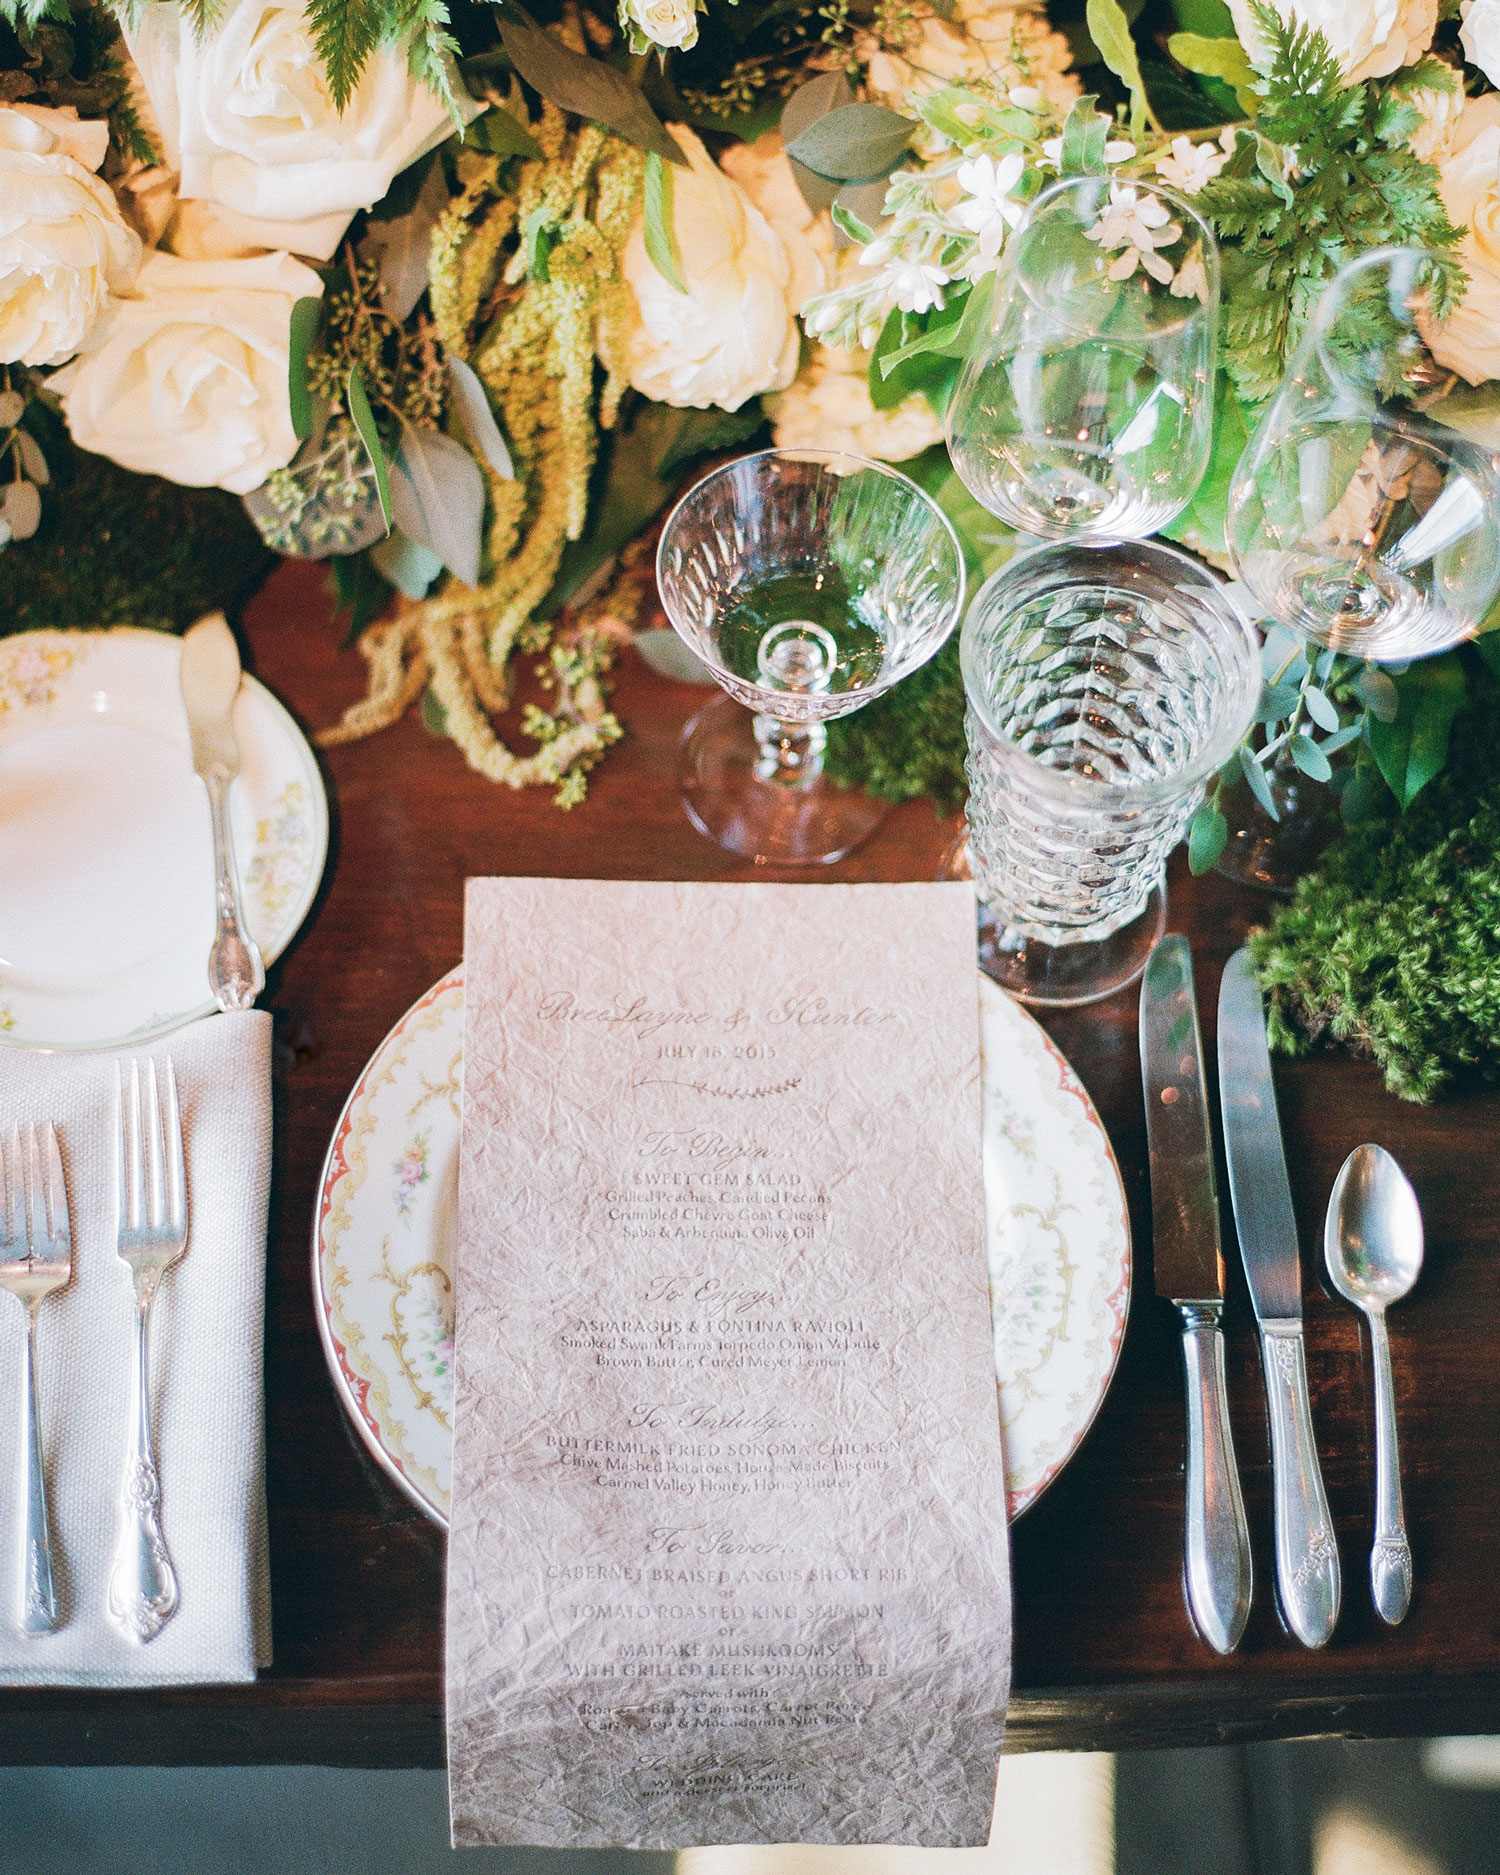 breelayne-hunter-wedding-california-0094-barn-santa-lucia-preserve-placesetting-s112849.jpg